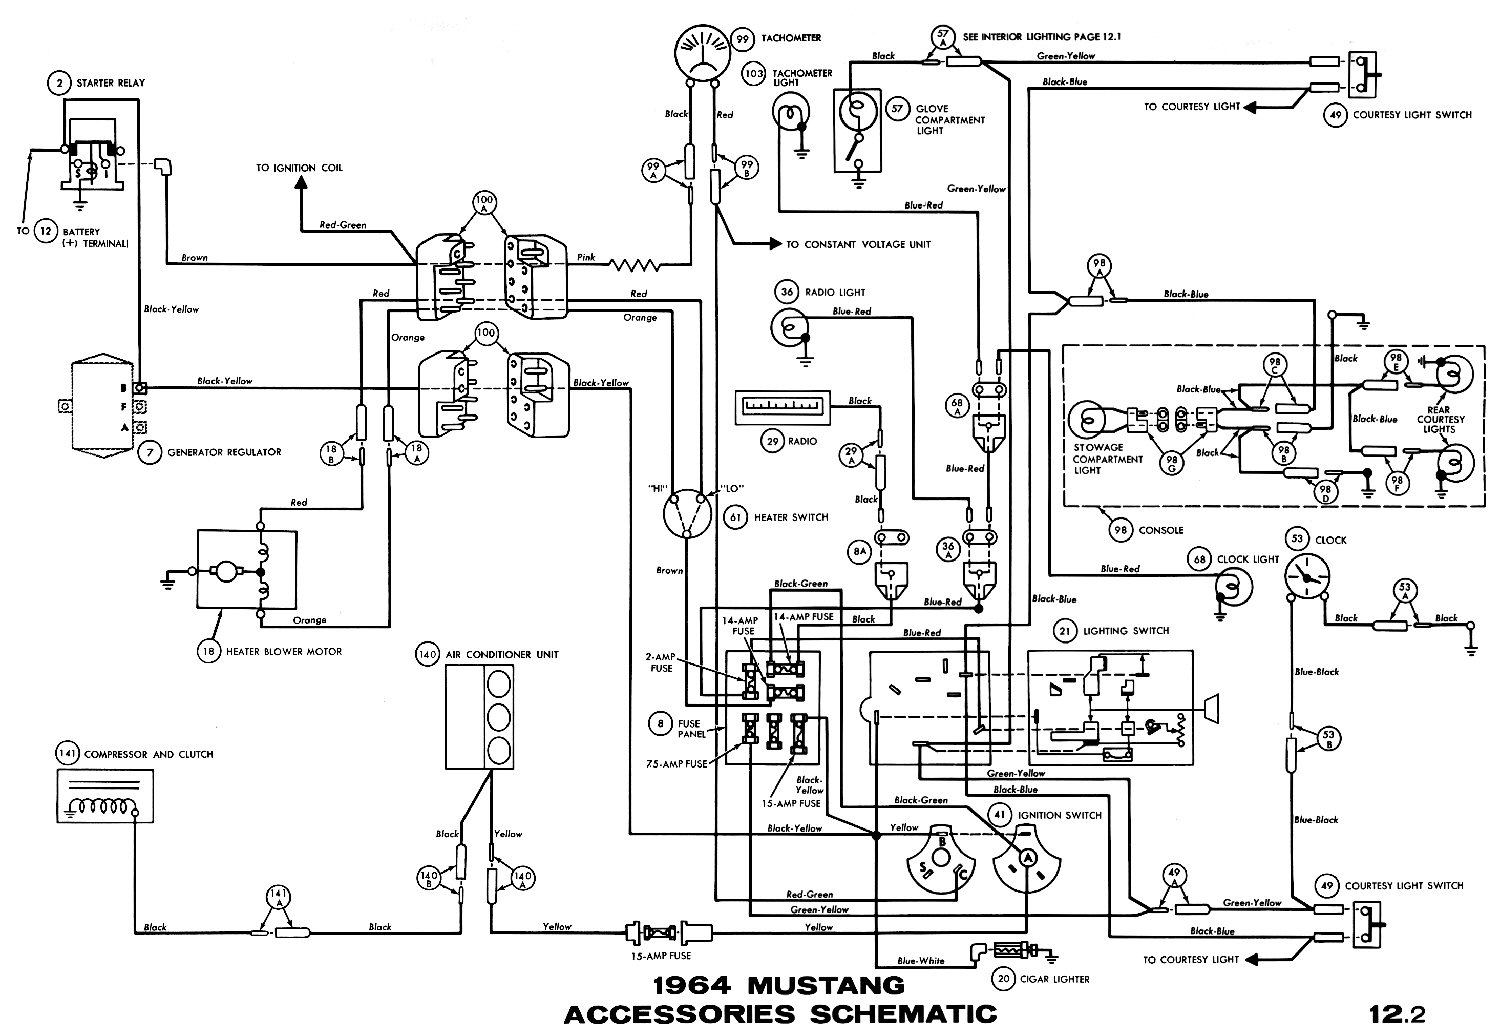 1964m 1964 mustang wiring diagrams average joe restoration Turn Signal Relay Wiring Diagram at mr168.co